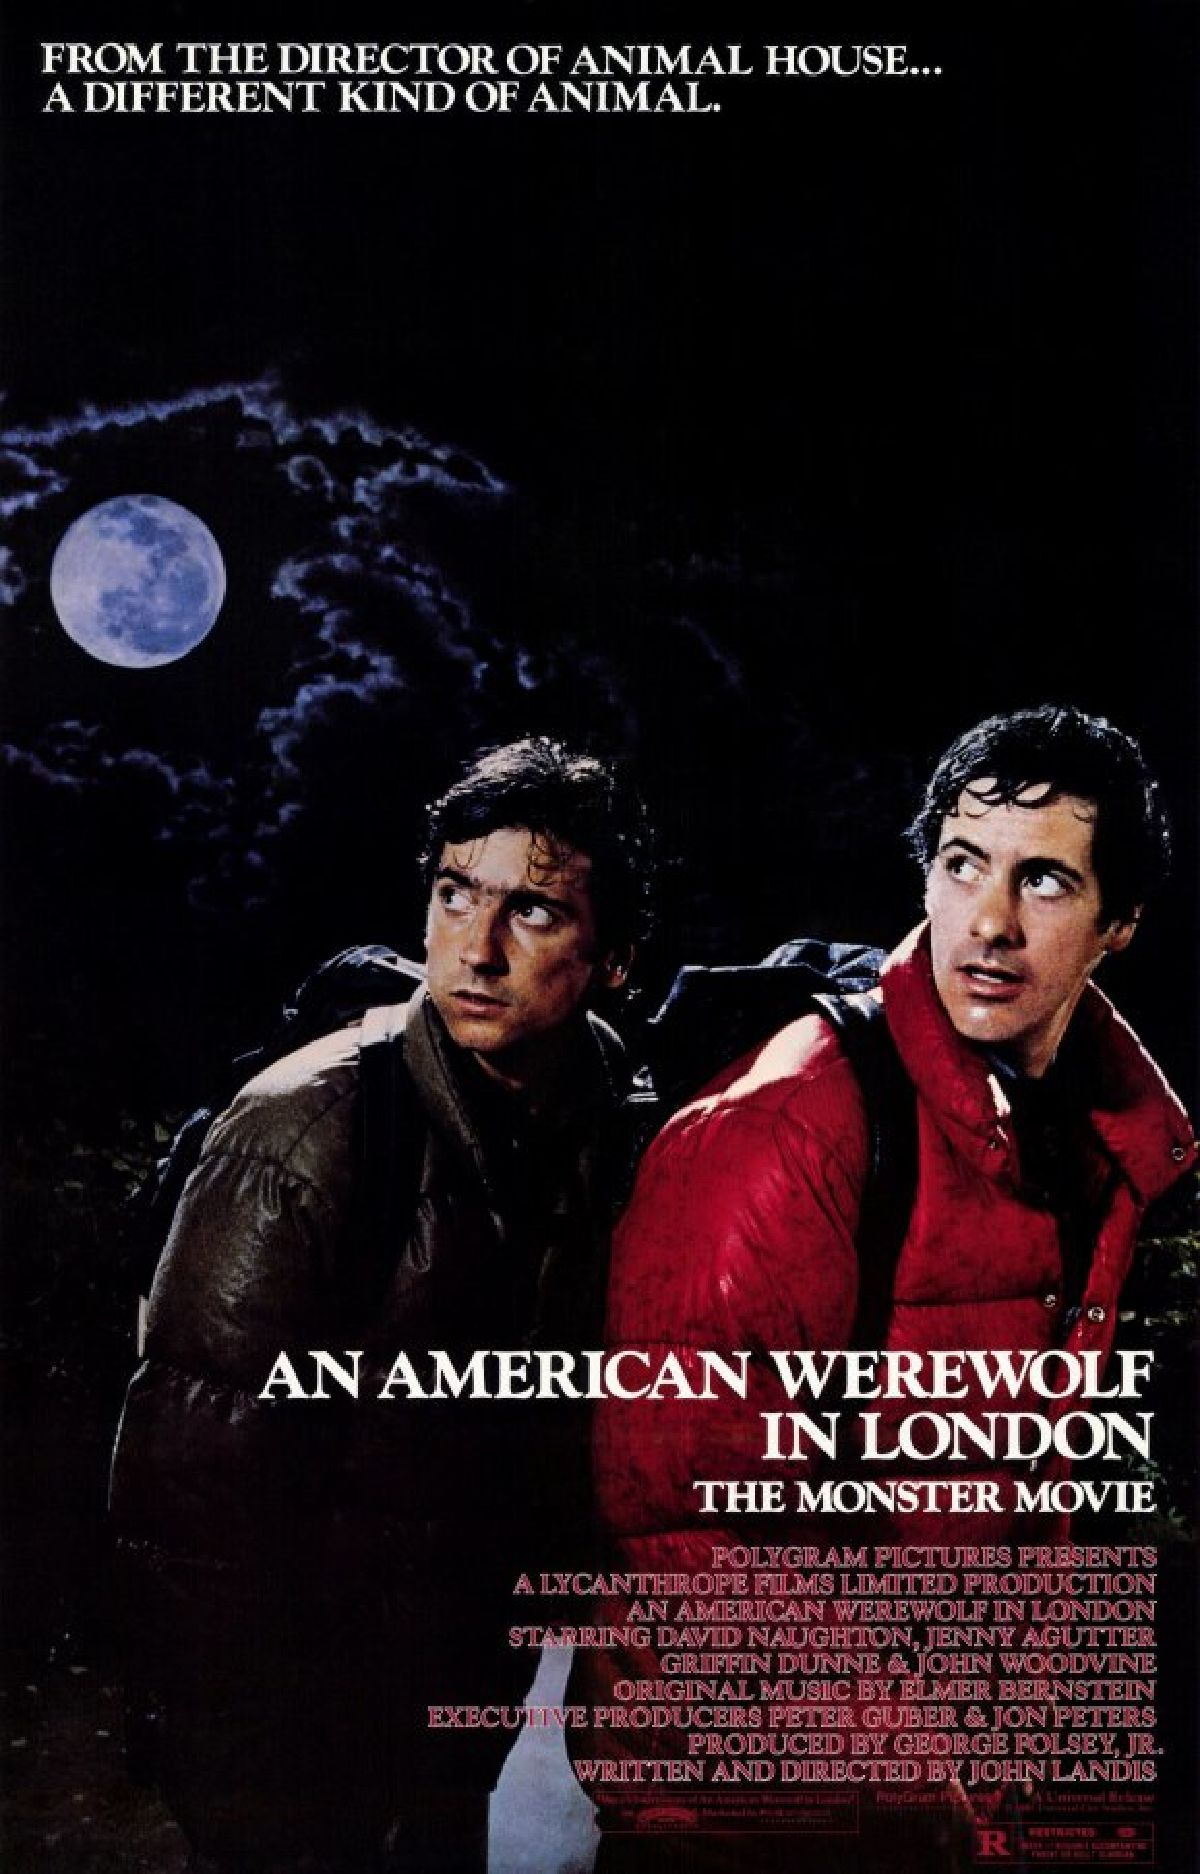 'An American Werewolf In London' movie poster